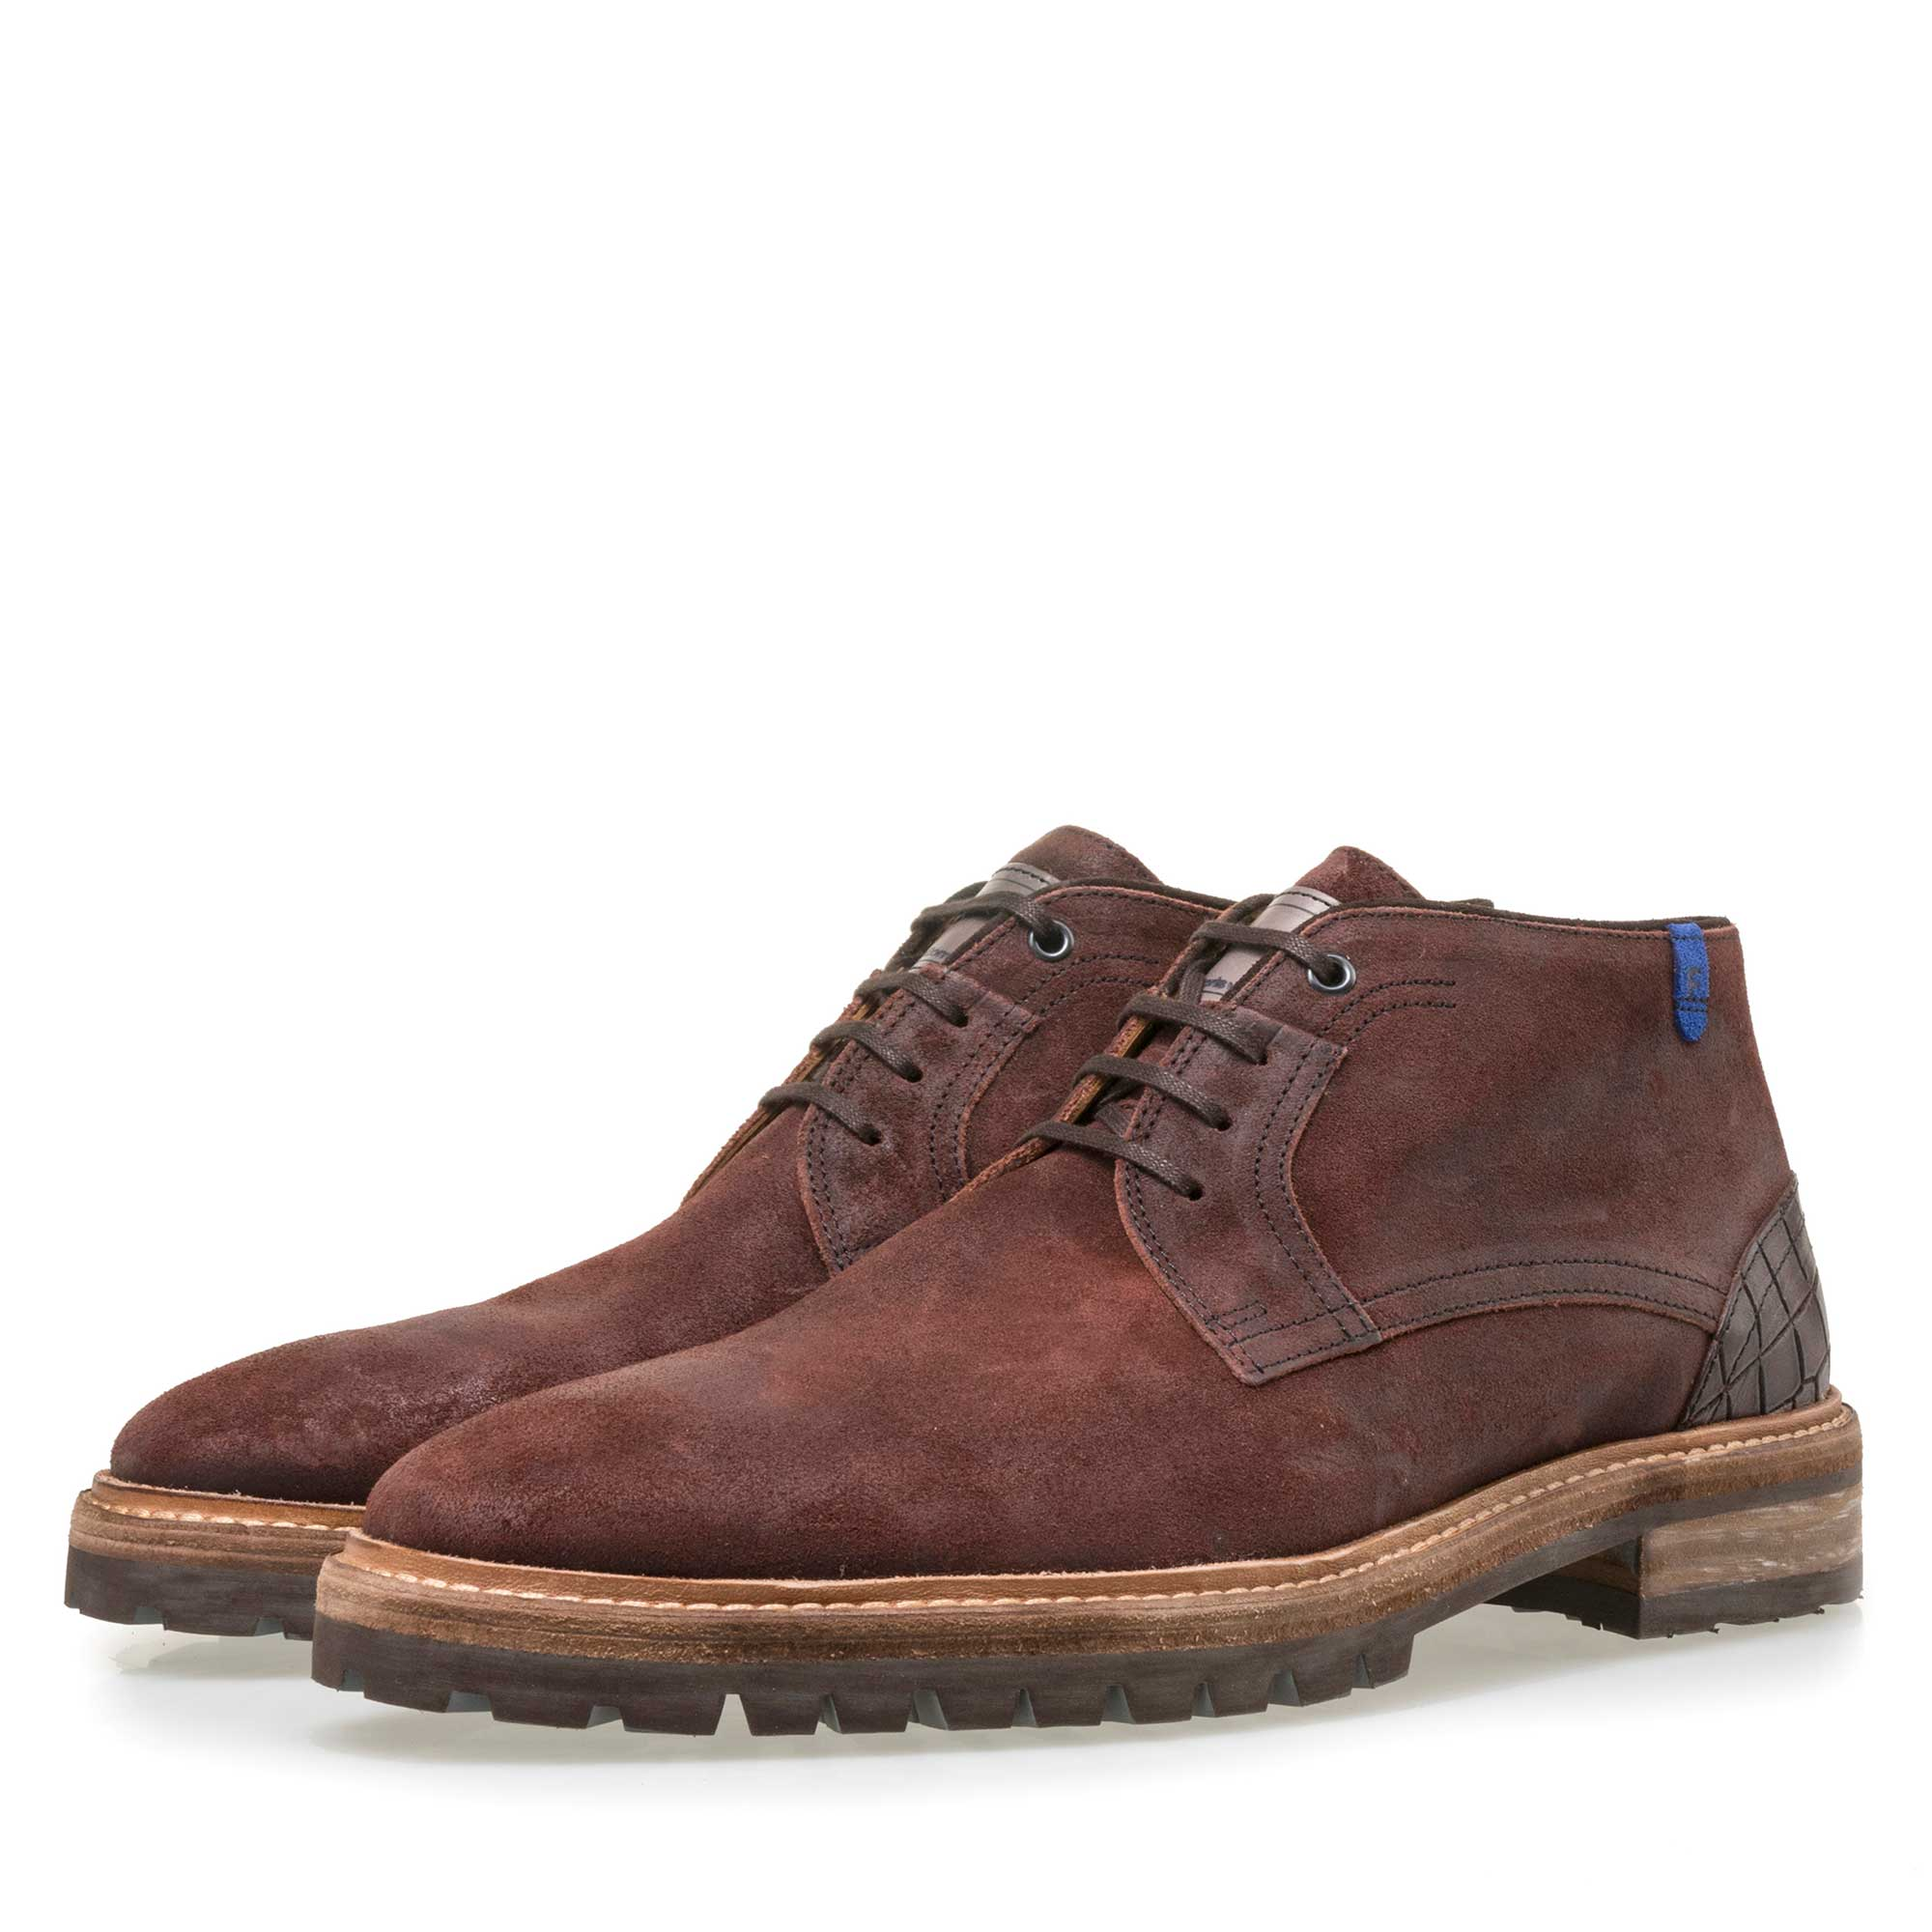 10970/03 - Floris van Bommel men's red-brown suede leather lace boot